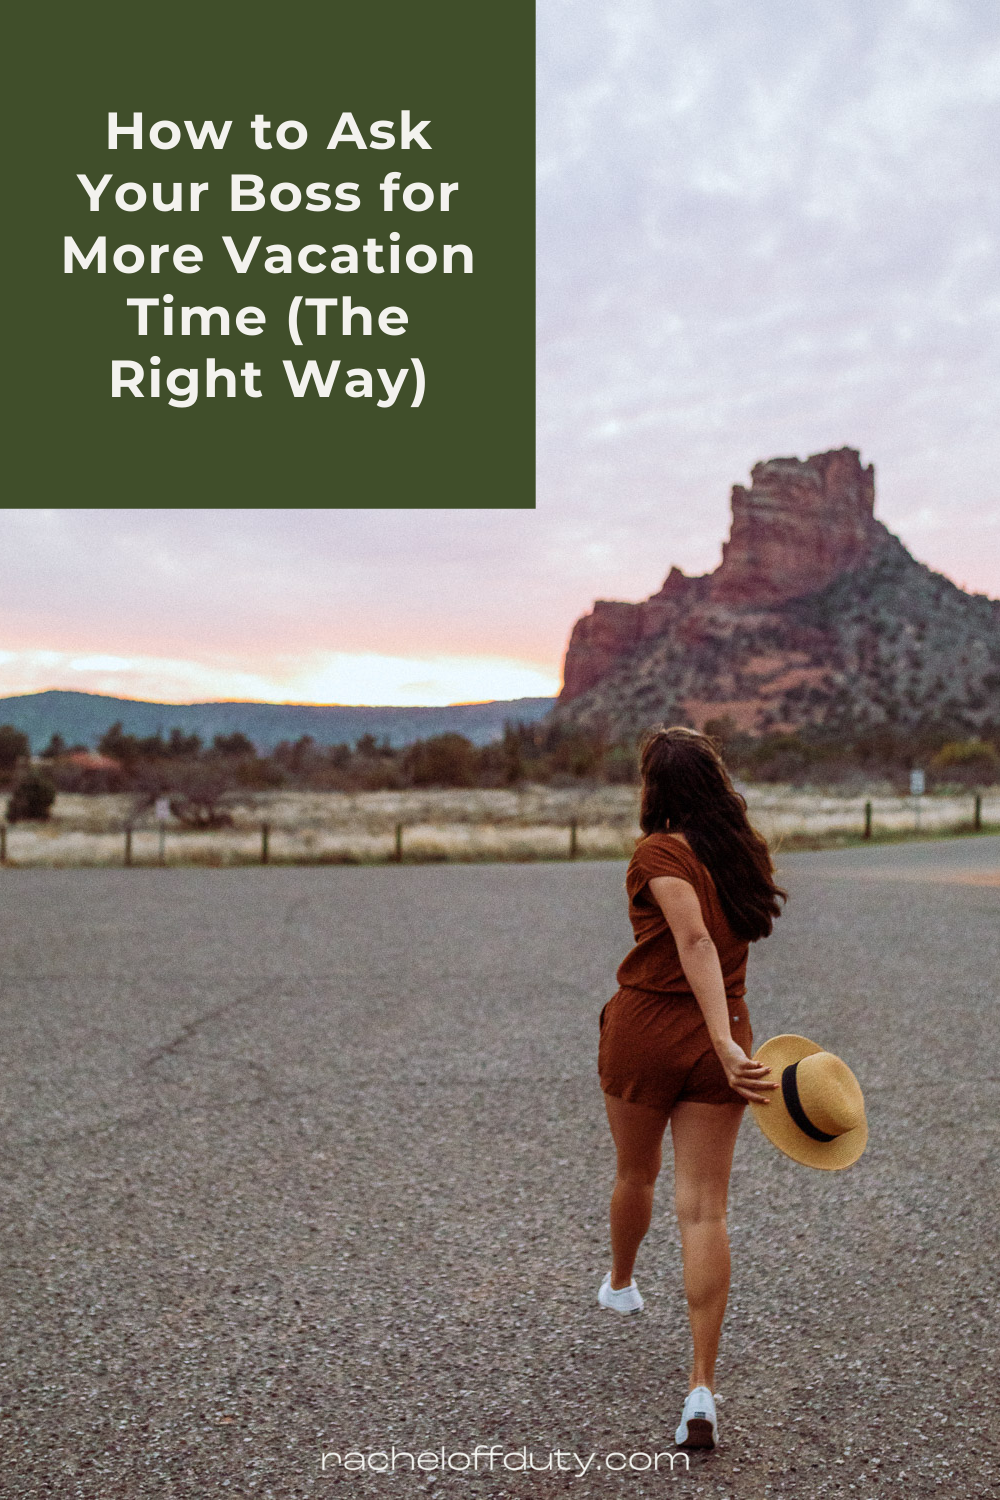 How to Ask Your Boss for More Vacation Time (The Right Way) - Rachel Off Duty